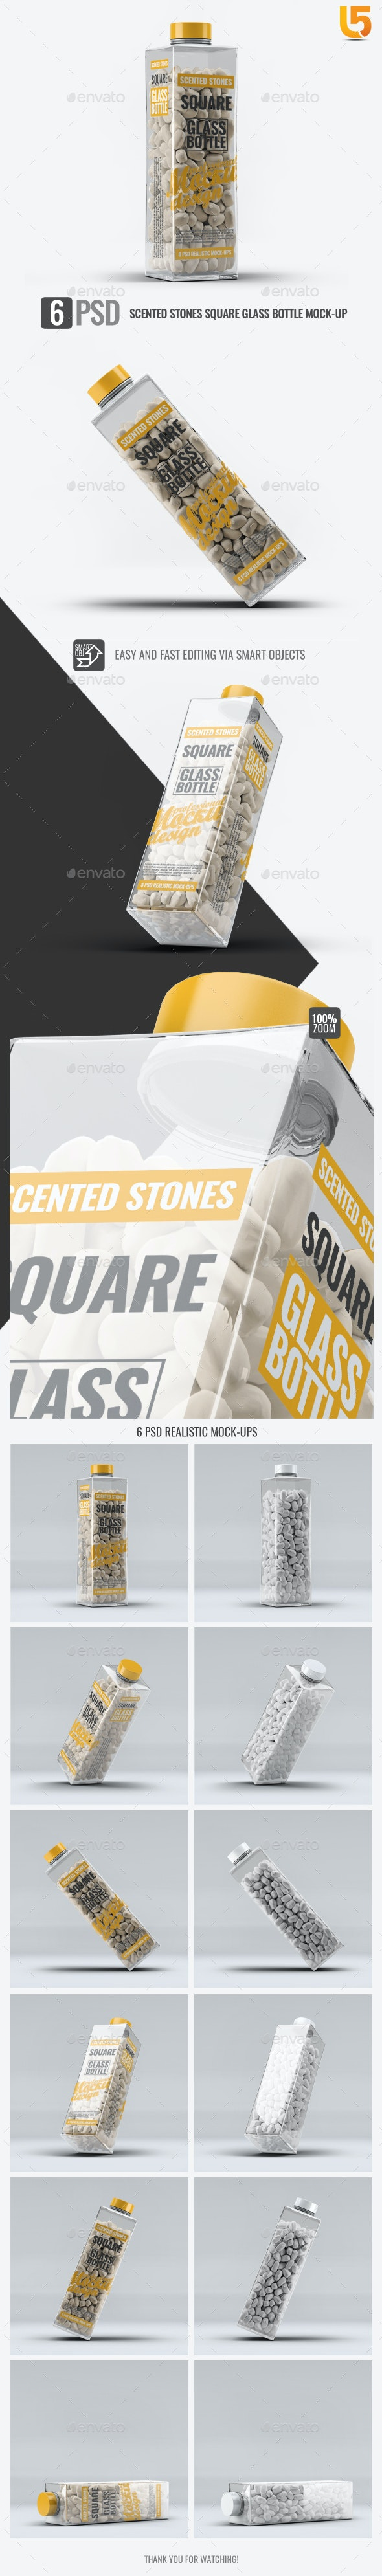 Scented Stones Square Glass Bottle Mock-Up - Beauty Packaging